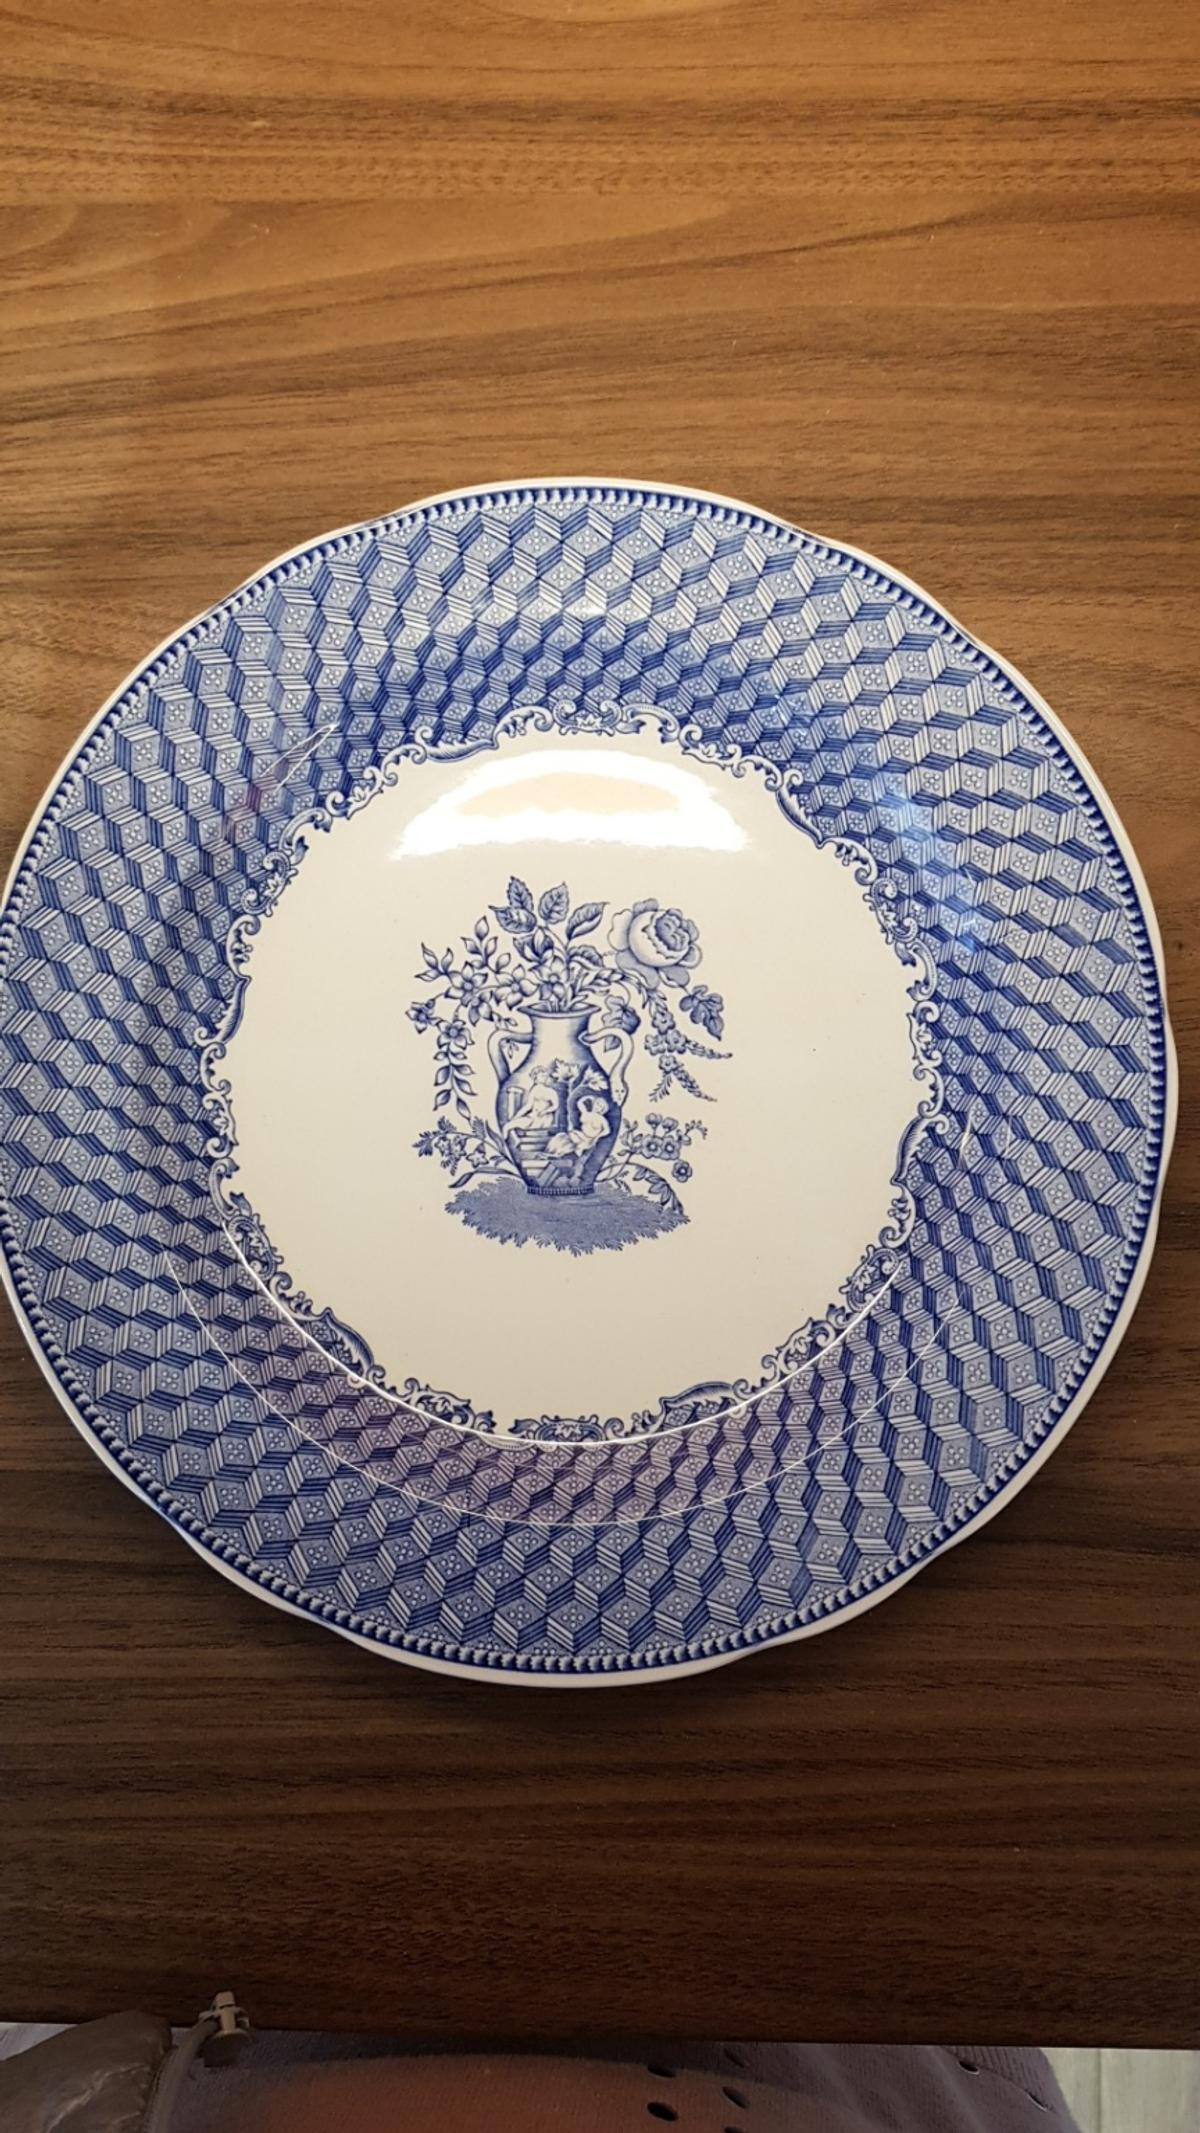 The Spode blue room collection diametre 26.5 cm very good condition